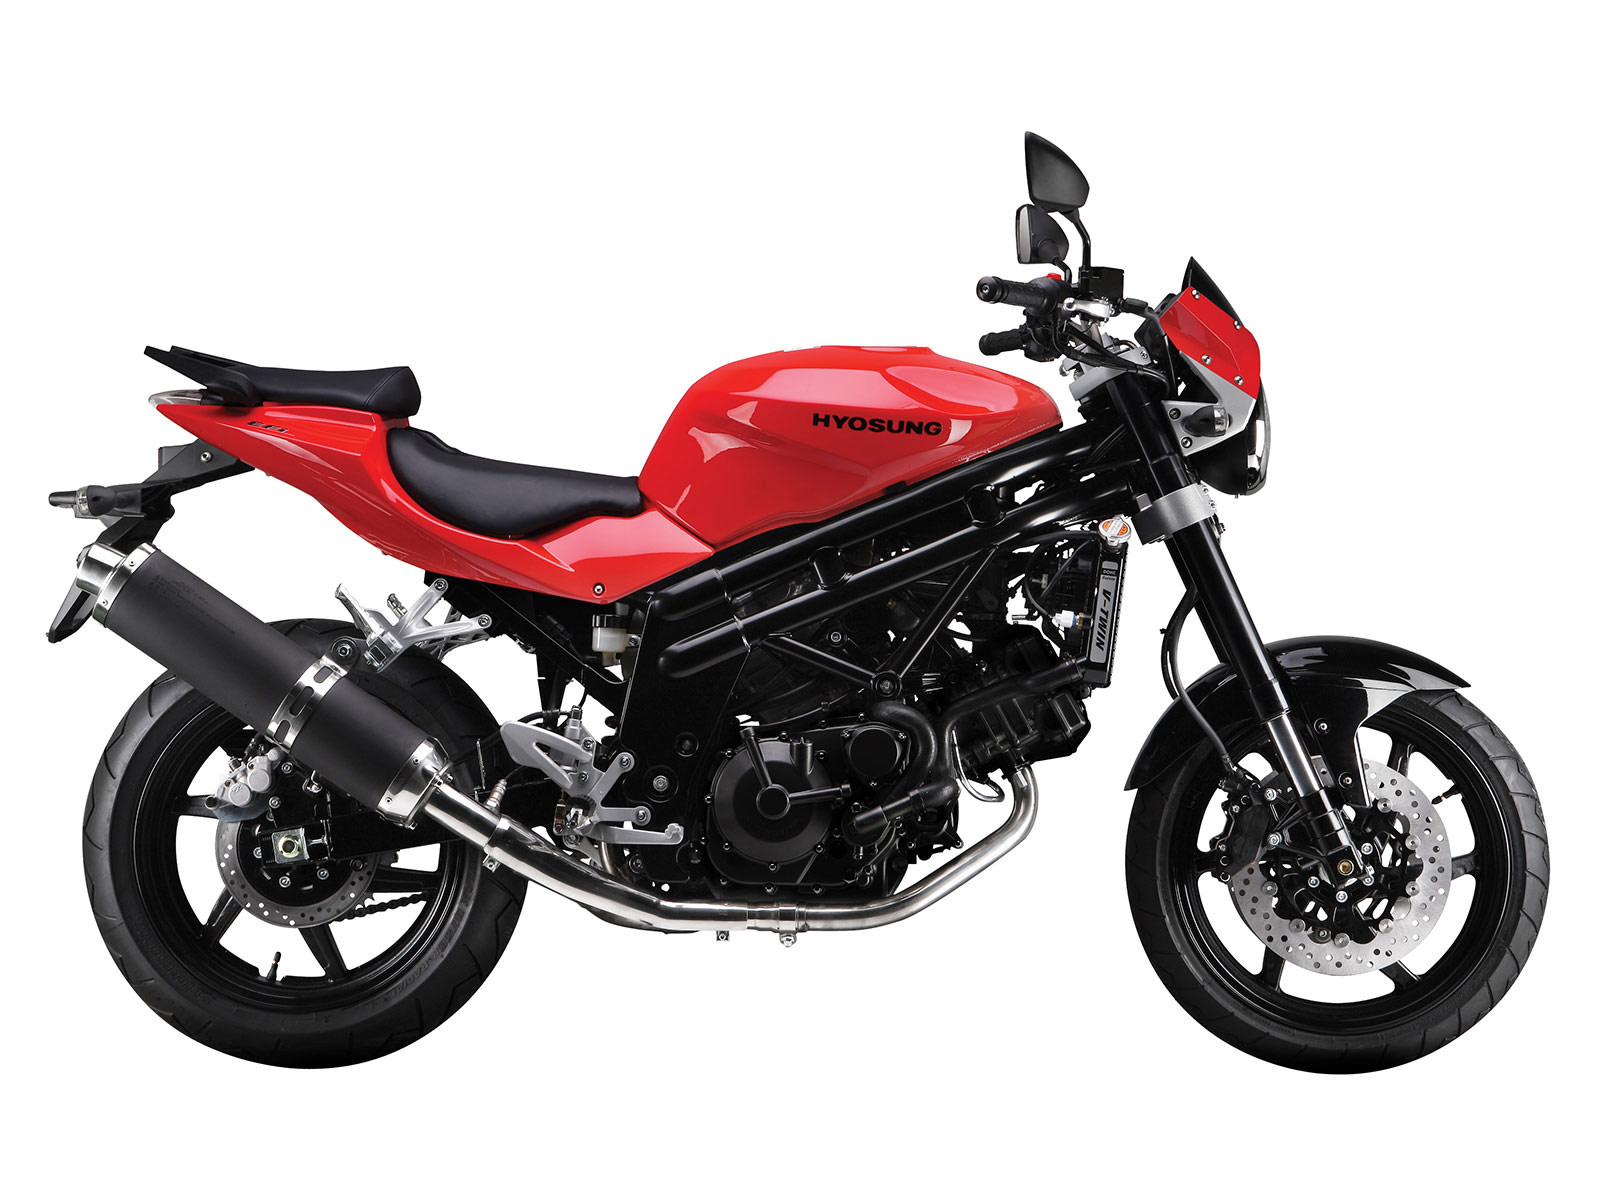 hyosung gt650 fi 2010 wallpapers insurance info specs